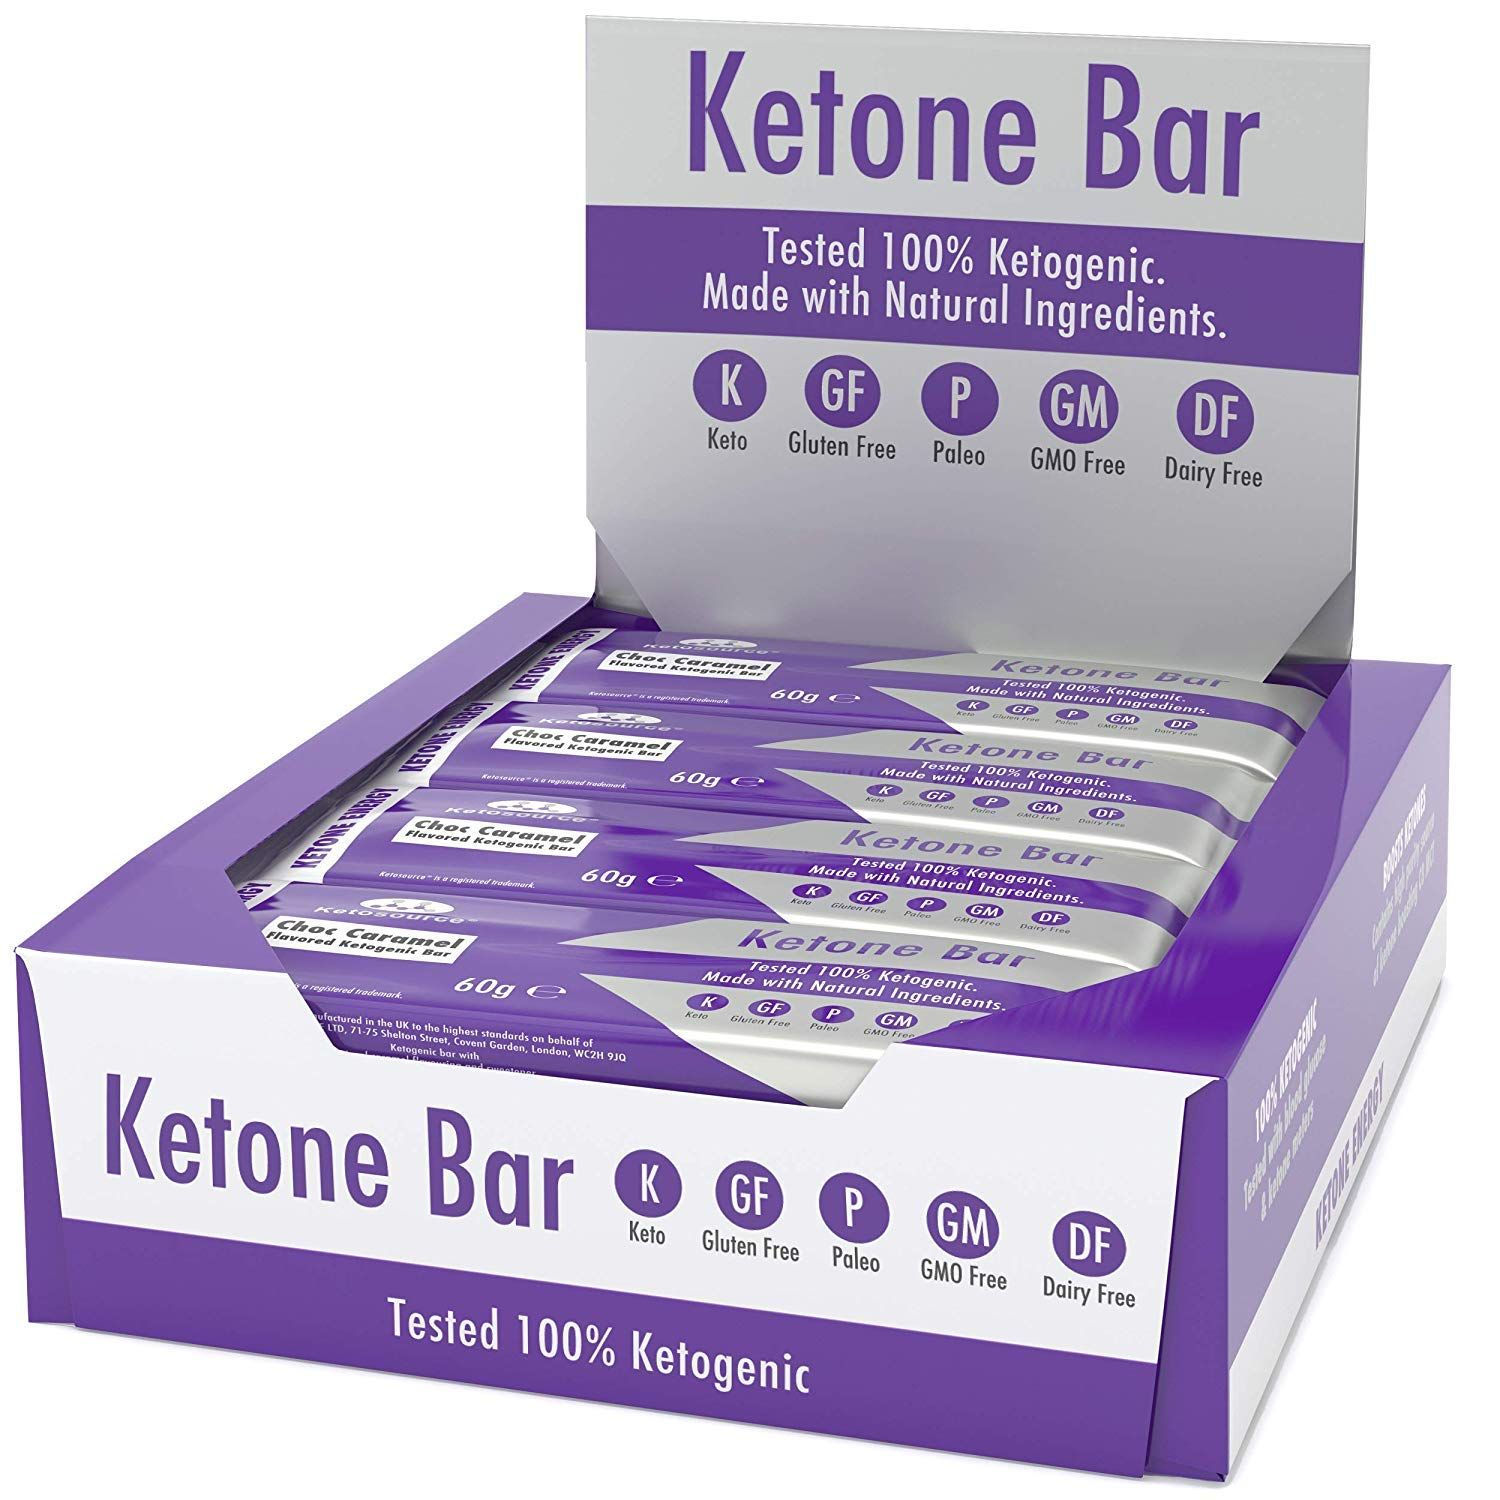 Ketone Bar X G Keto Bars With All Natural Ingredientsketo Snacks For Keto Dietnet Carbs Per Bartruly Amazon Affiliate Lin Keto Bars Keto Diet Snacks Ketogenic